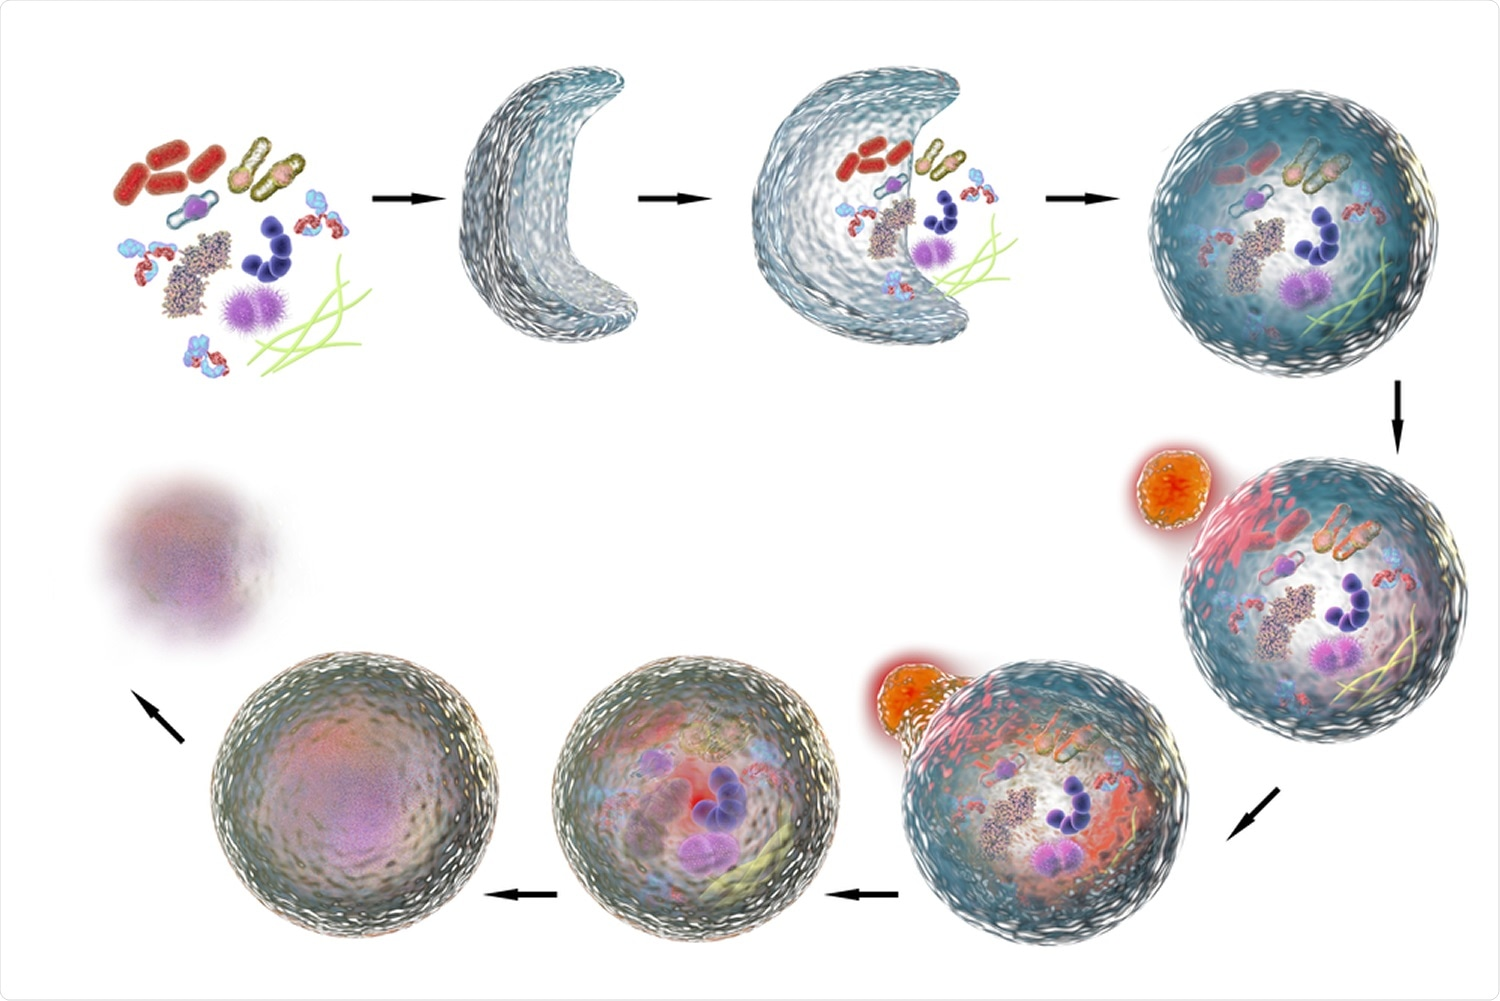 Study: Manipulation of autophagy by SARS-CoV-2 proteins. Image Credit: Kateryna Kon / Shutterstock